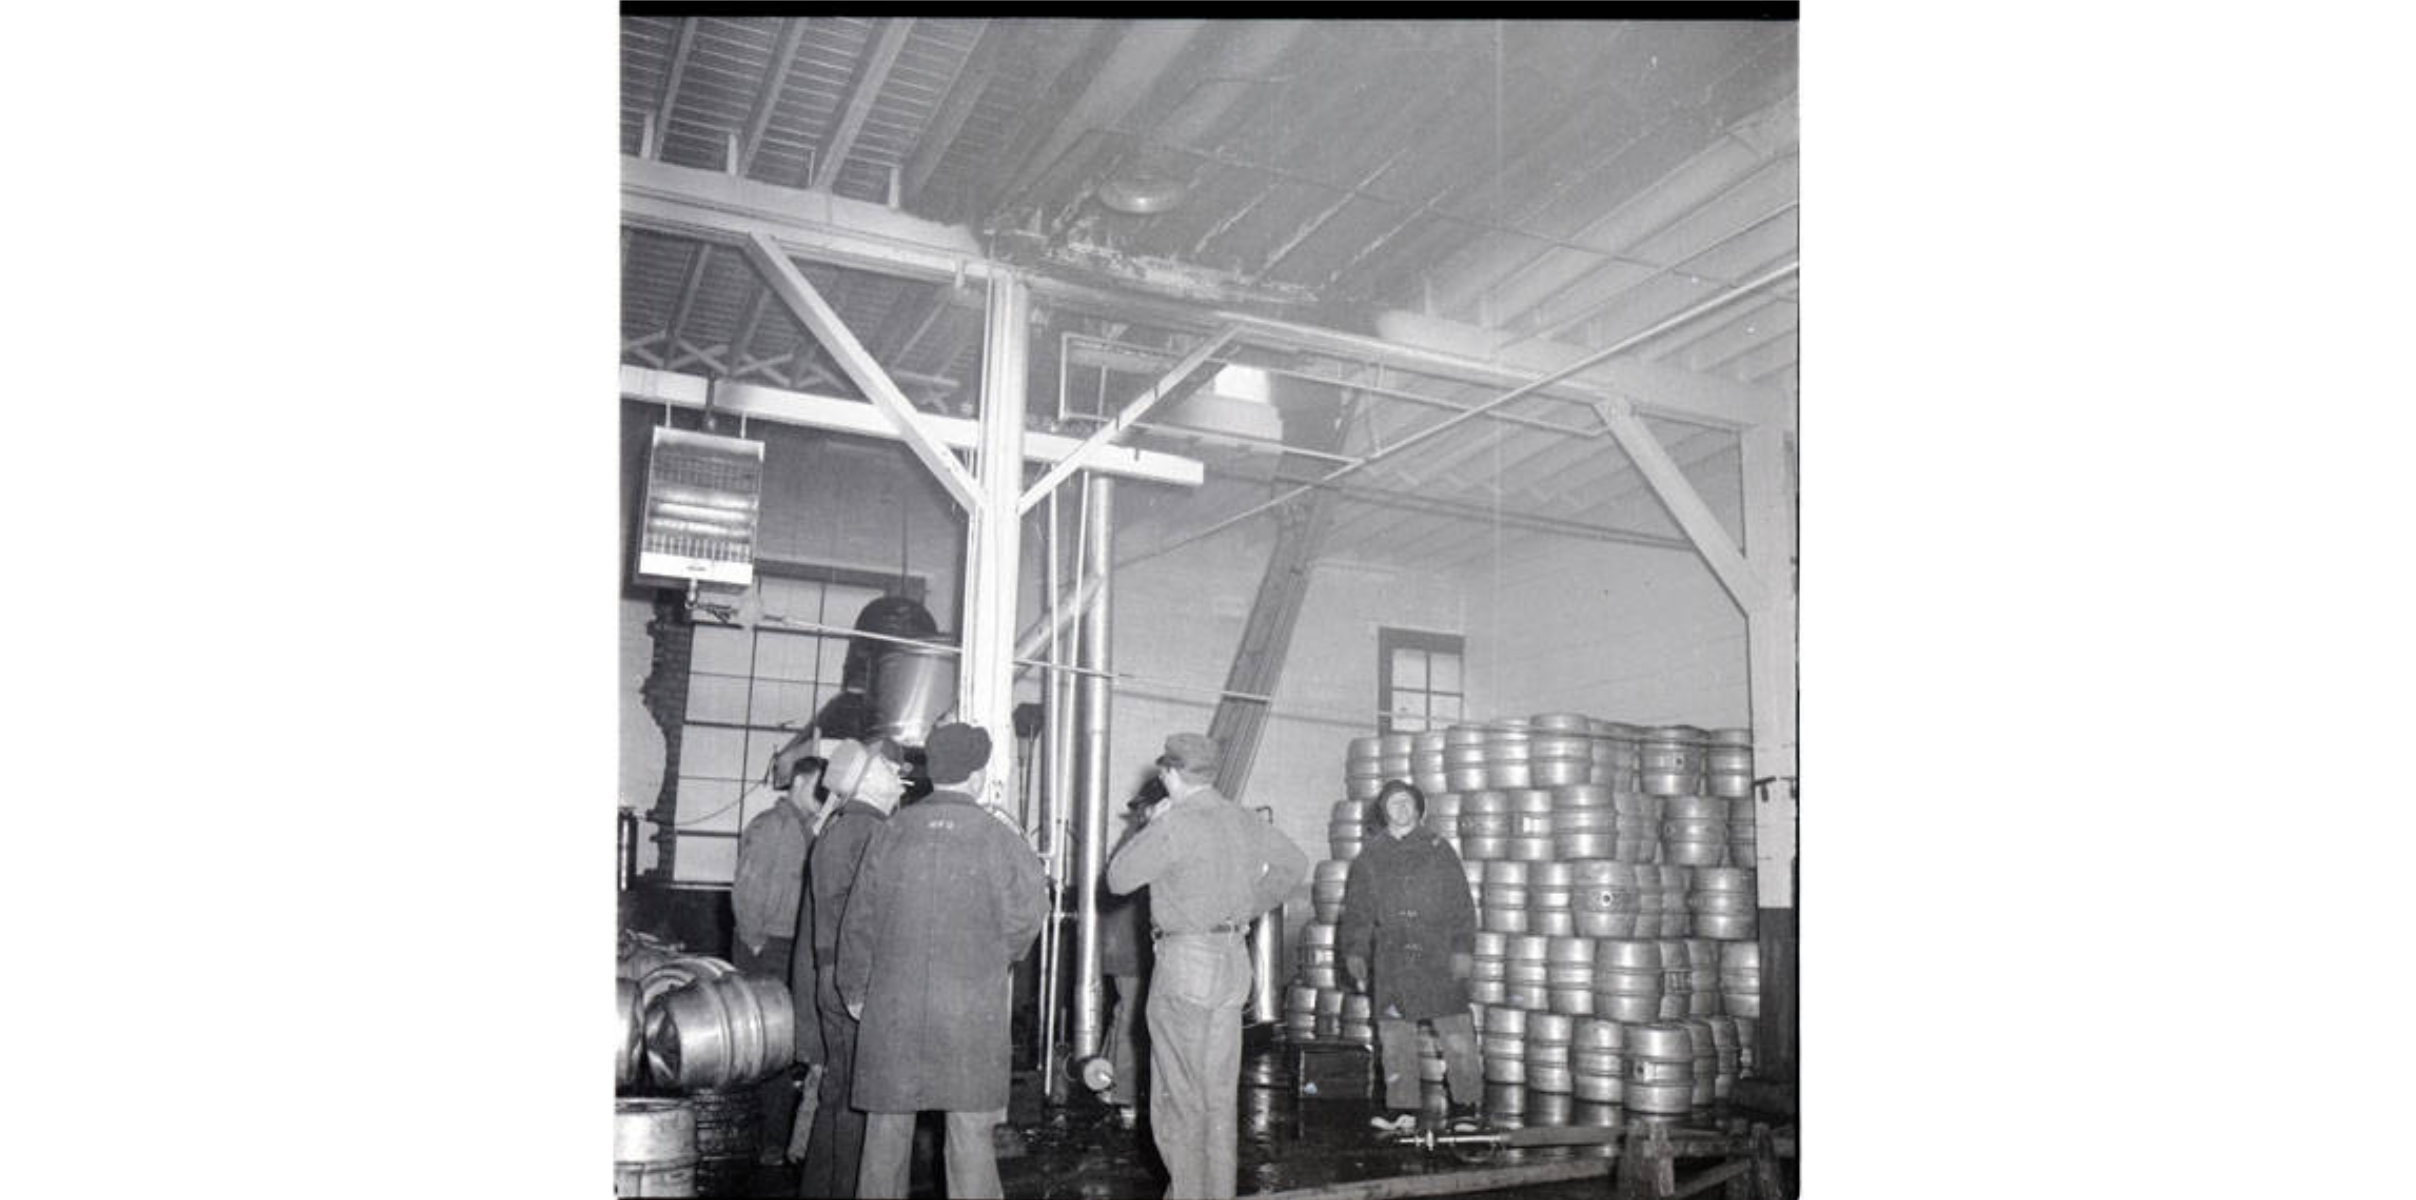 Fire Damage in the Brewery, 17 April 1956